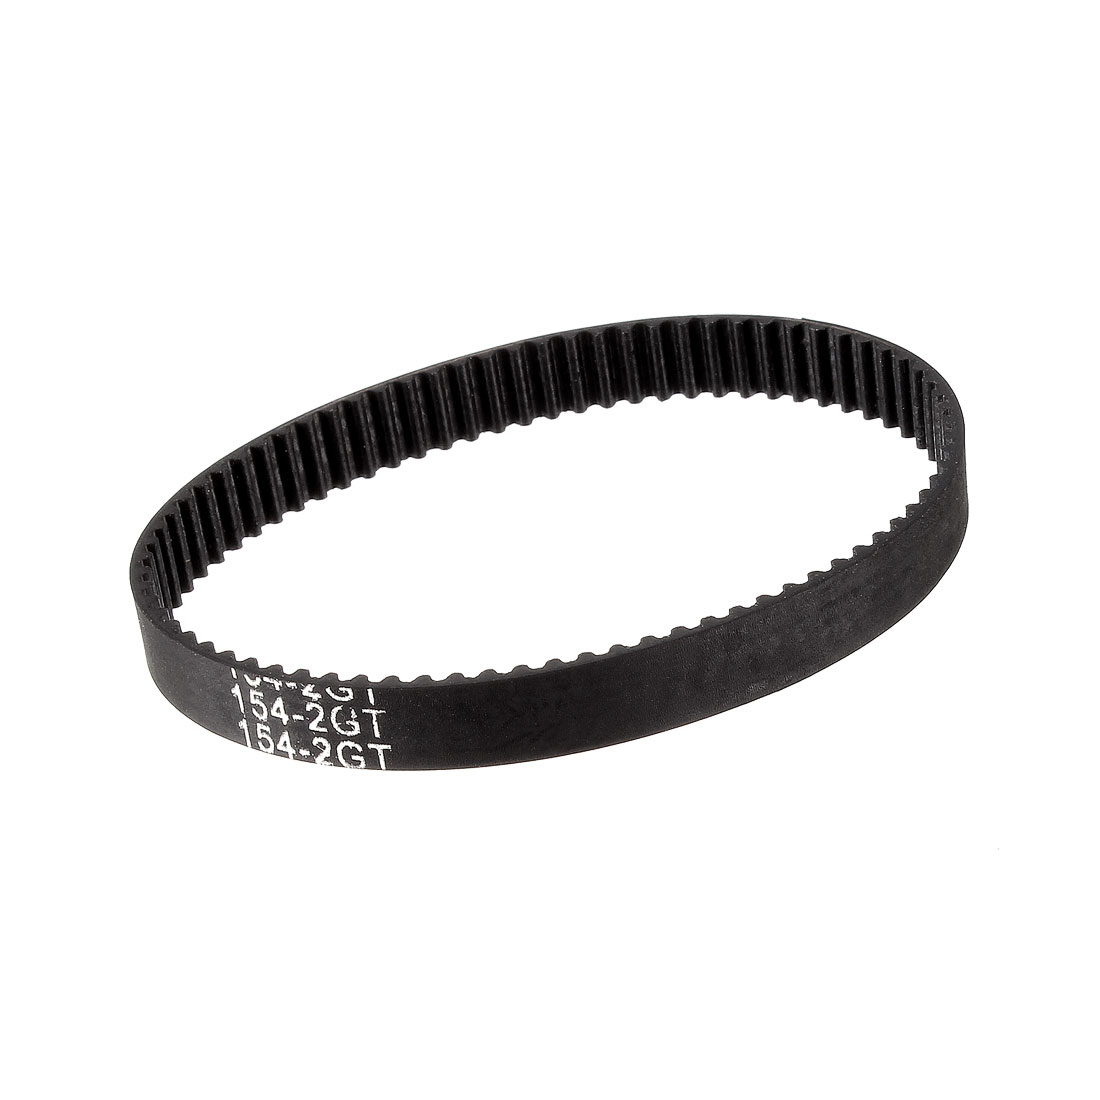 GT2 Timing Belt 154mm Closed Fit Synchronous Wheel for 3D Printer